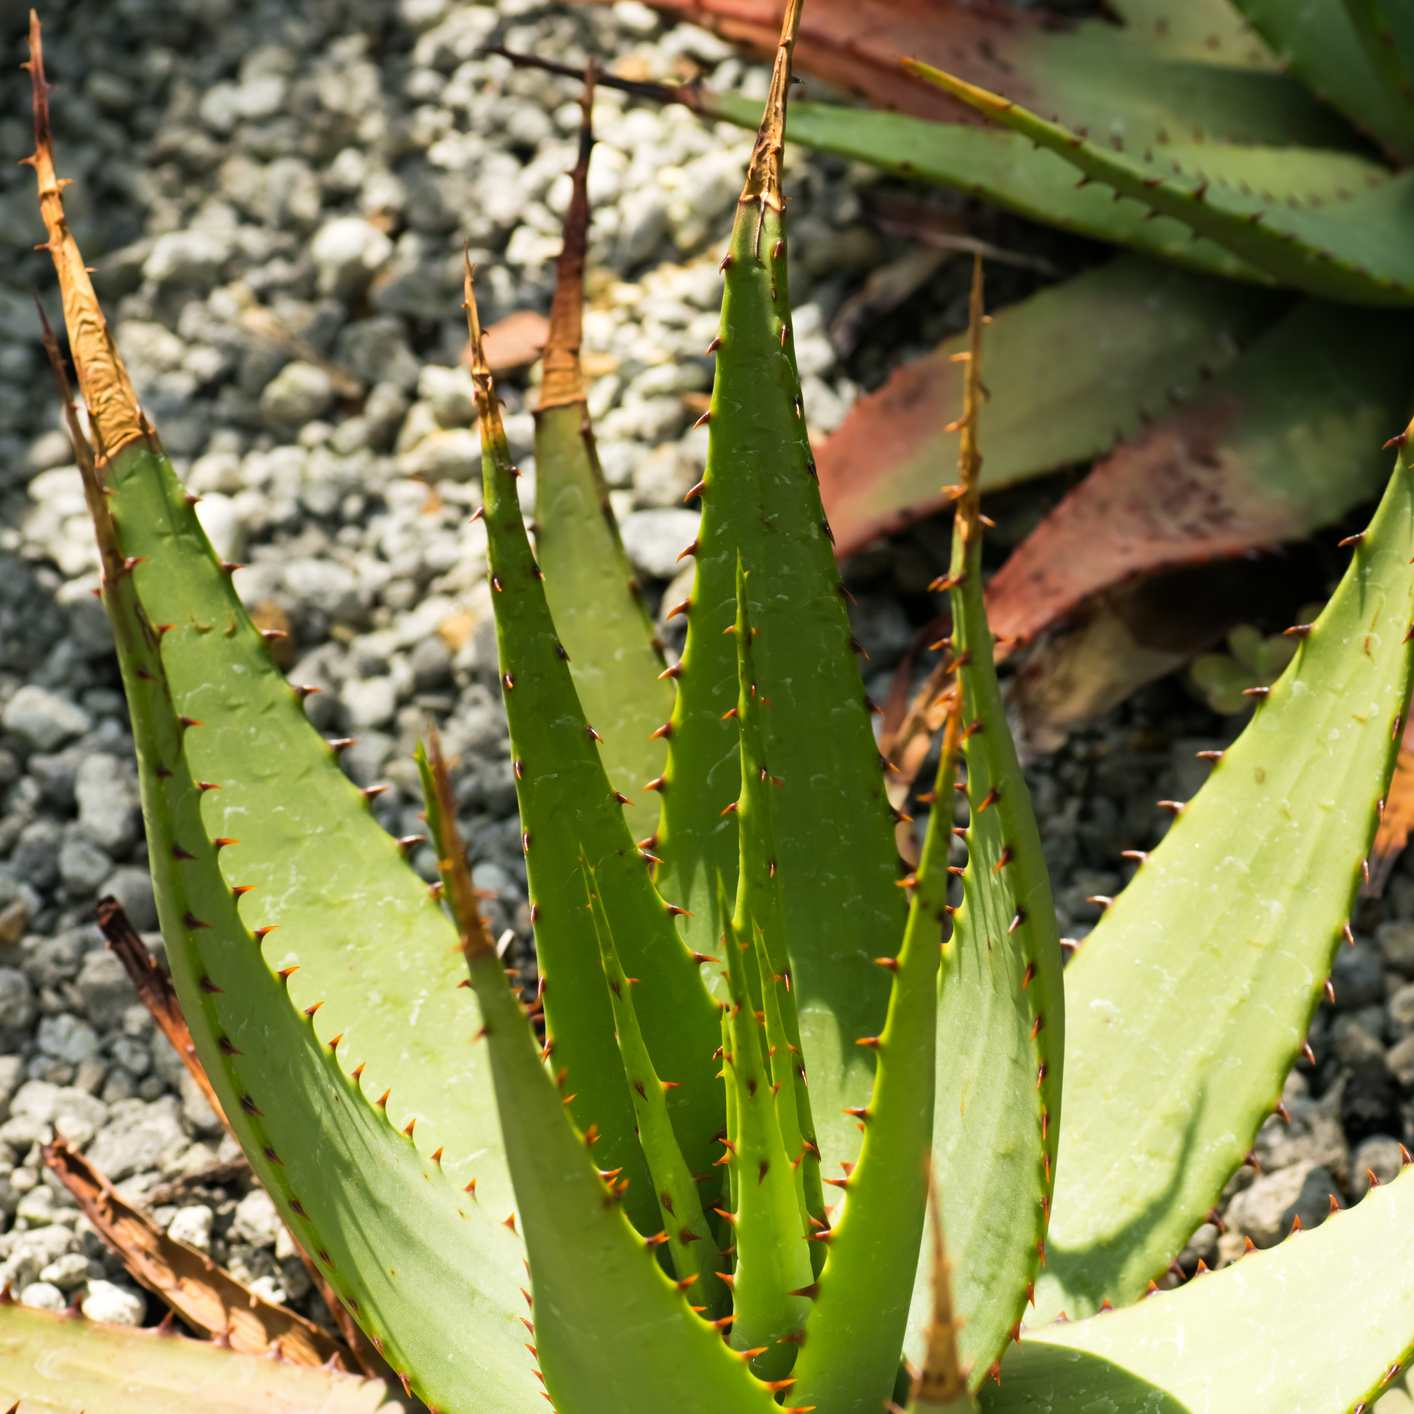 Aloe de serpiente; Aloe Broomii